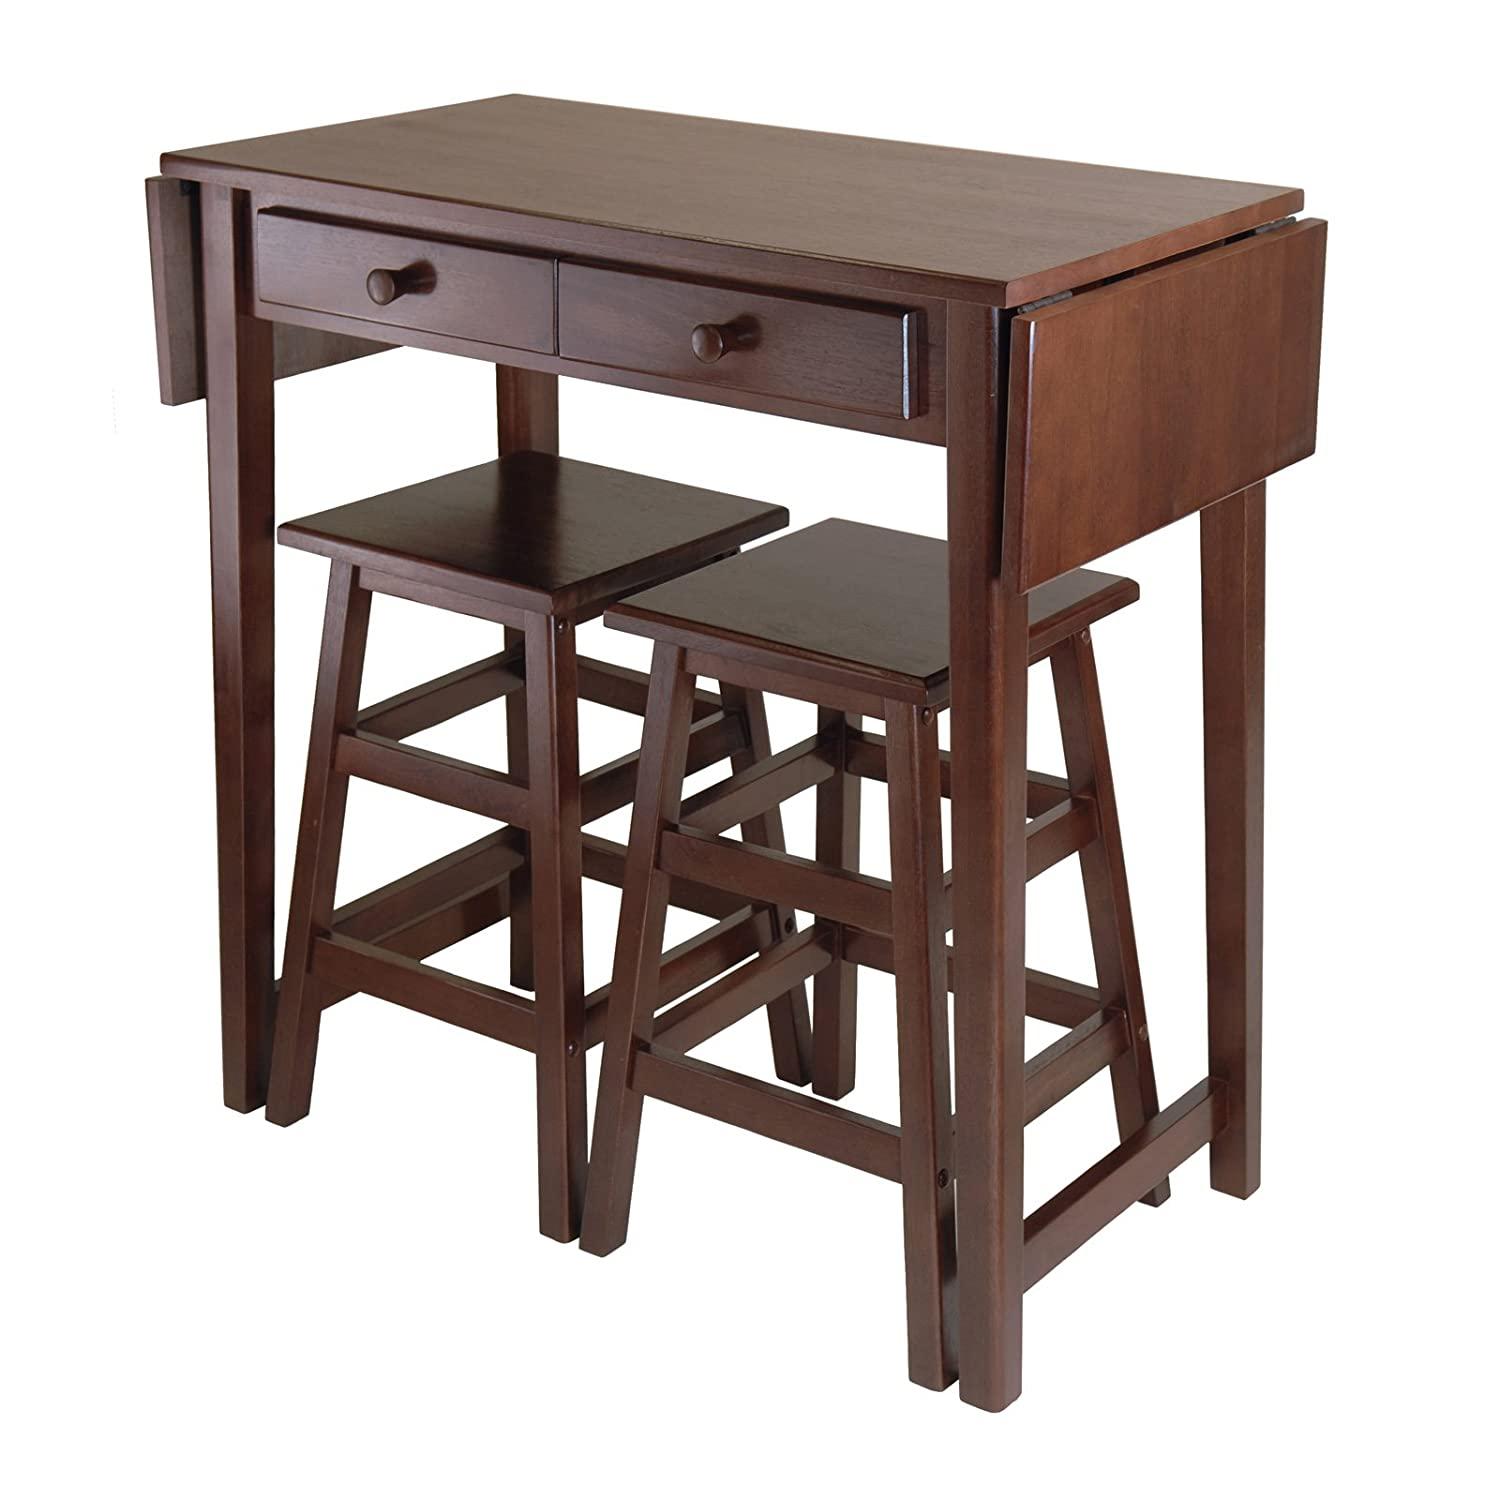 Amazon.com   Winsome Mercer Double Drop Leaf Table With 2 Stools   Table U0026  Chair Sets